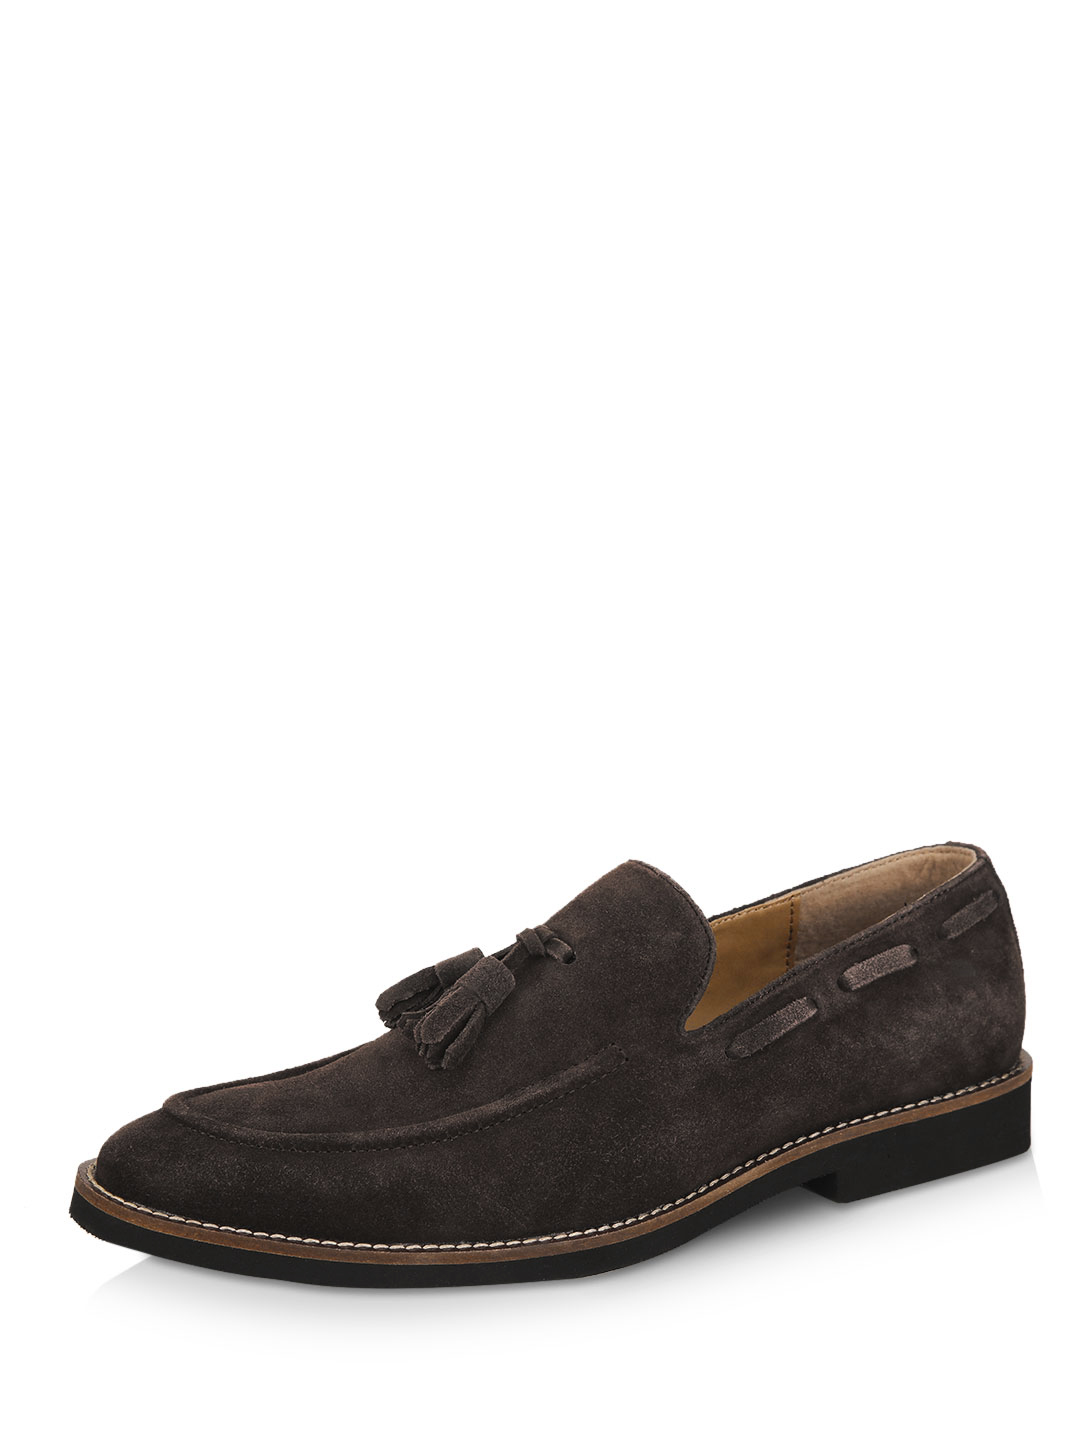 Griffin Brown Suede Tassled Loafers 1